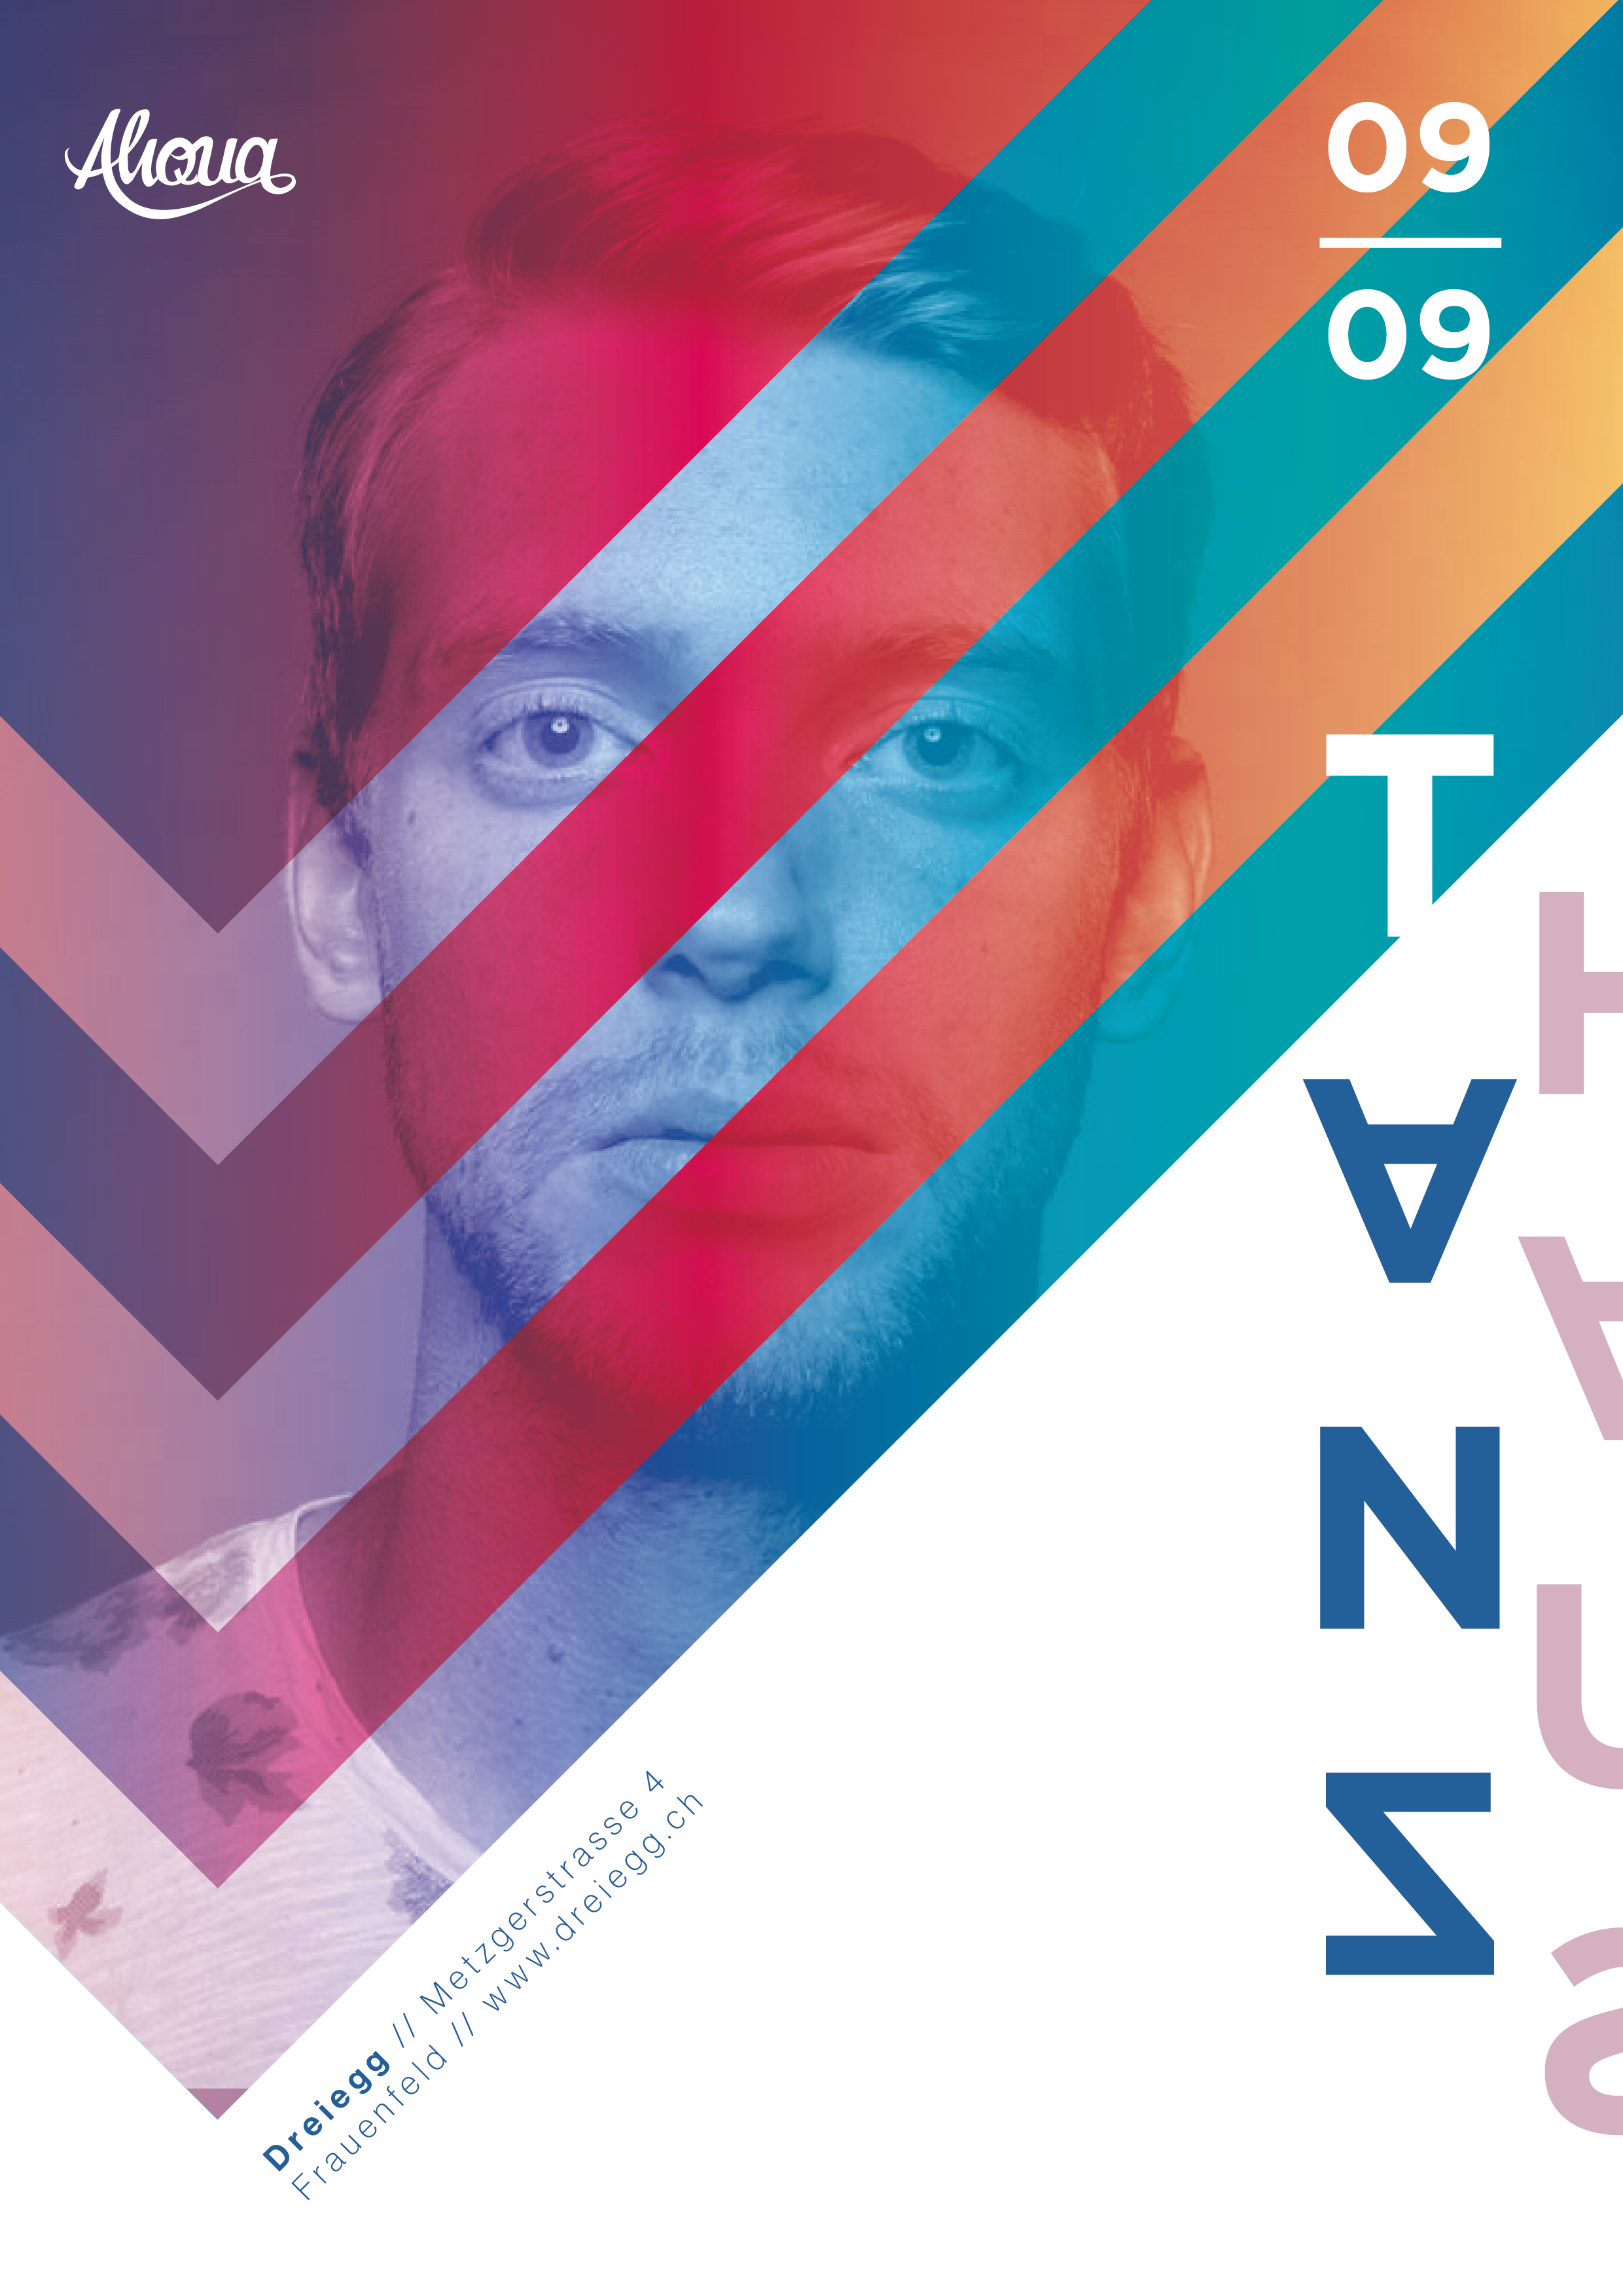 Tanzhaus-090916-def-01.png